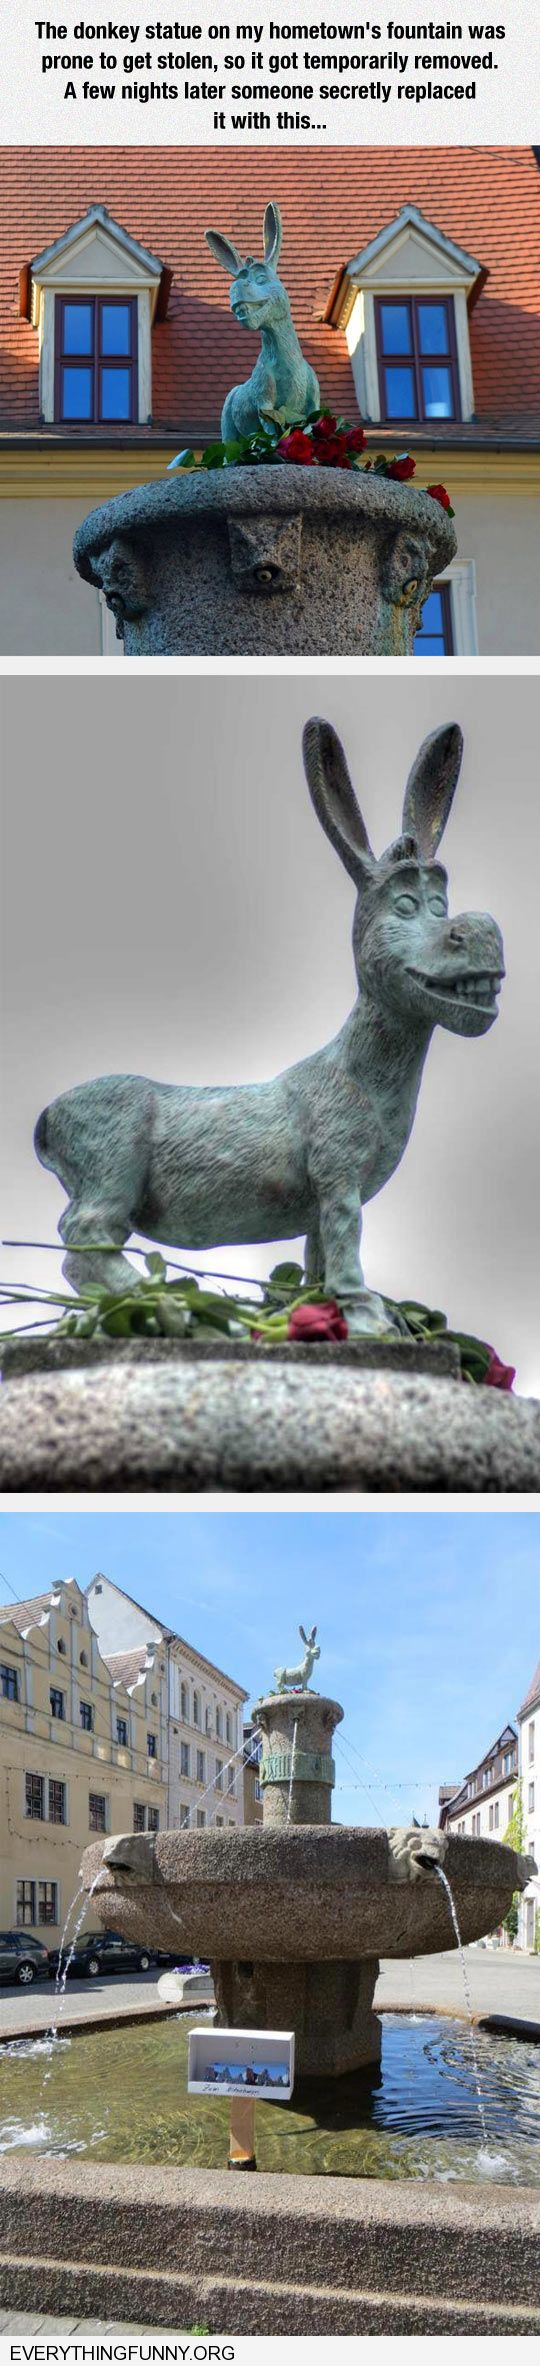 funny donkey statue replaced with donkey statue from Shrek